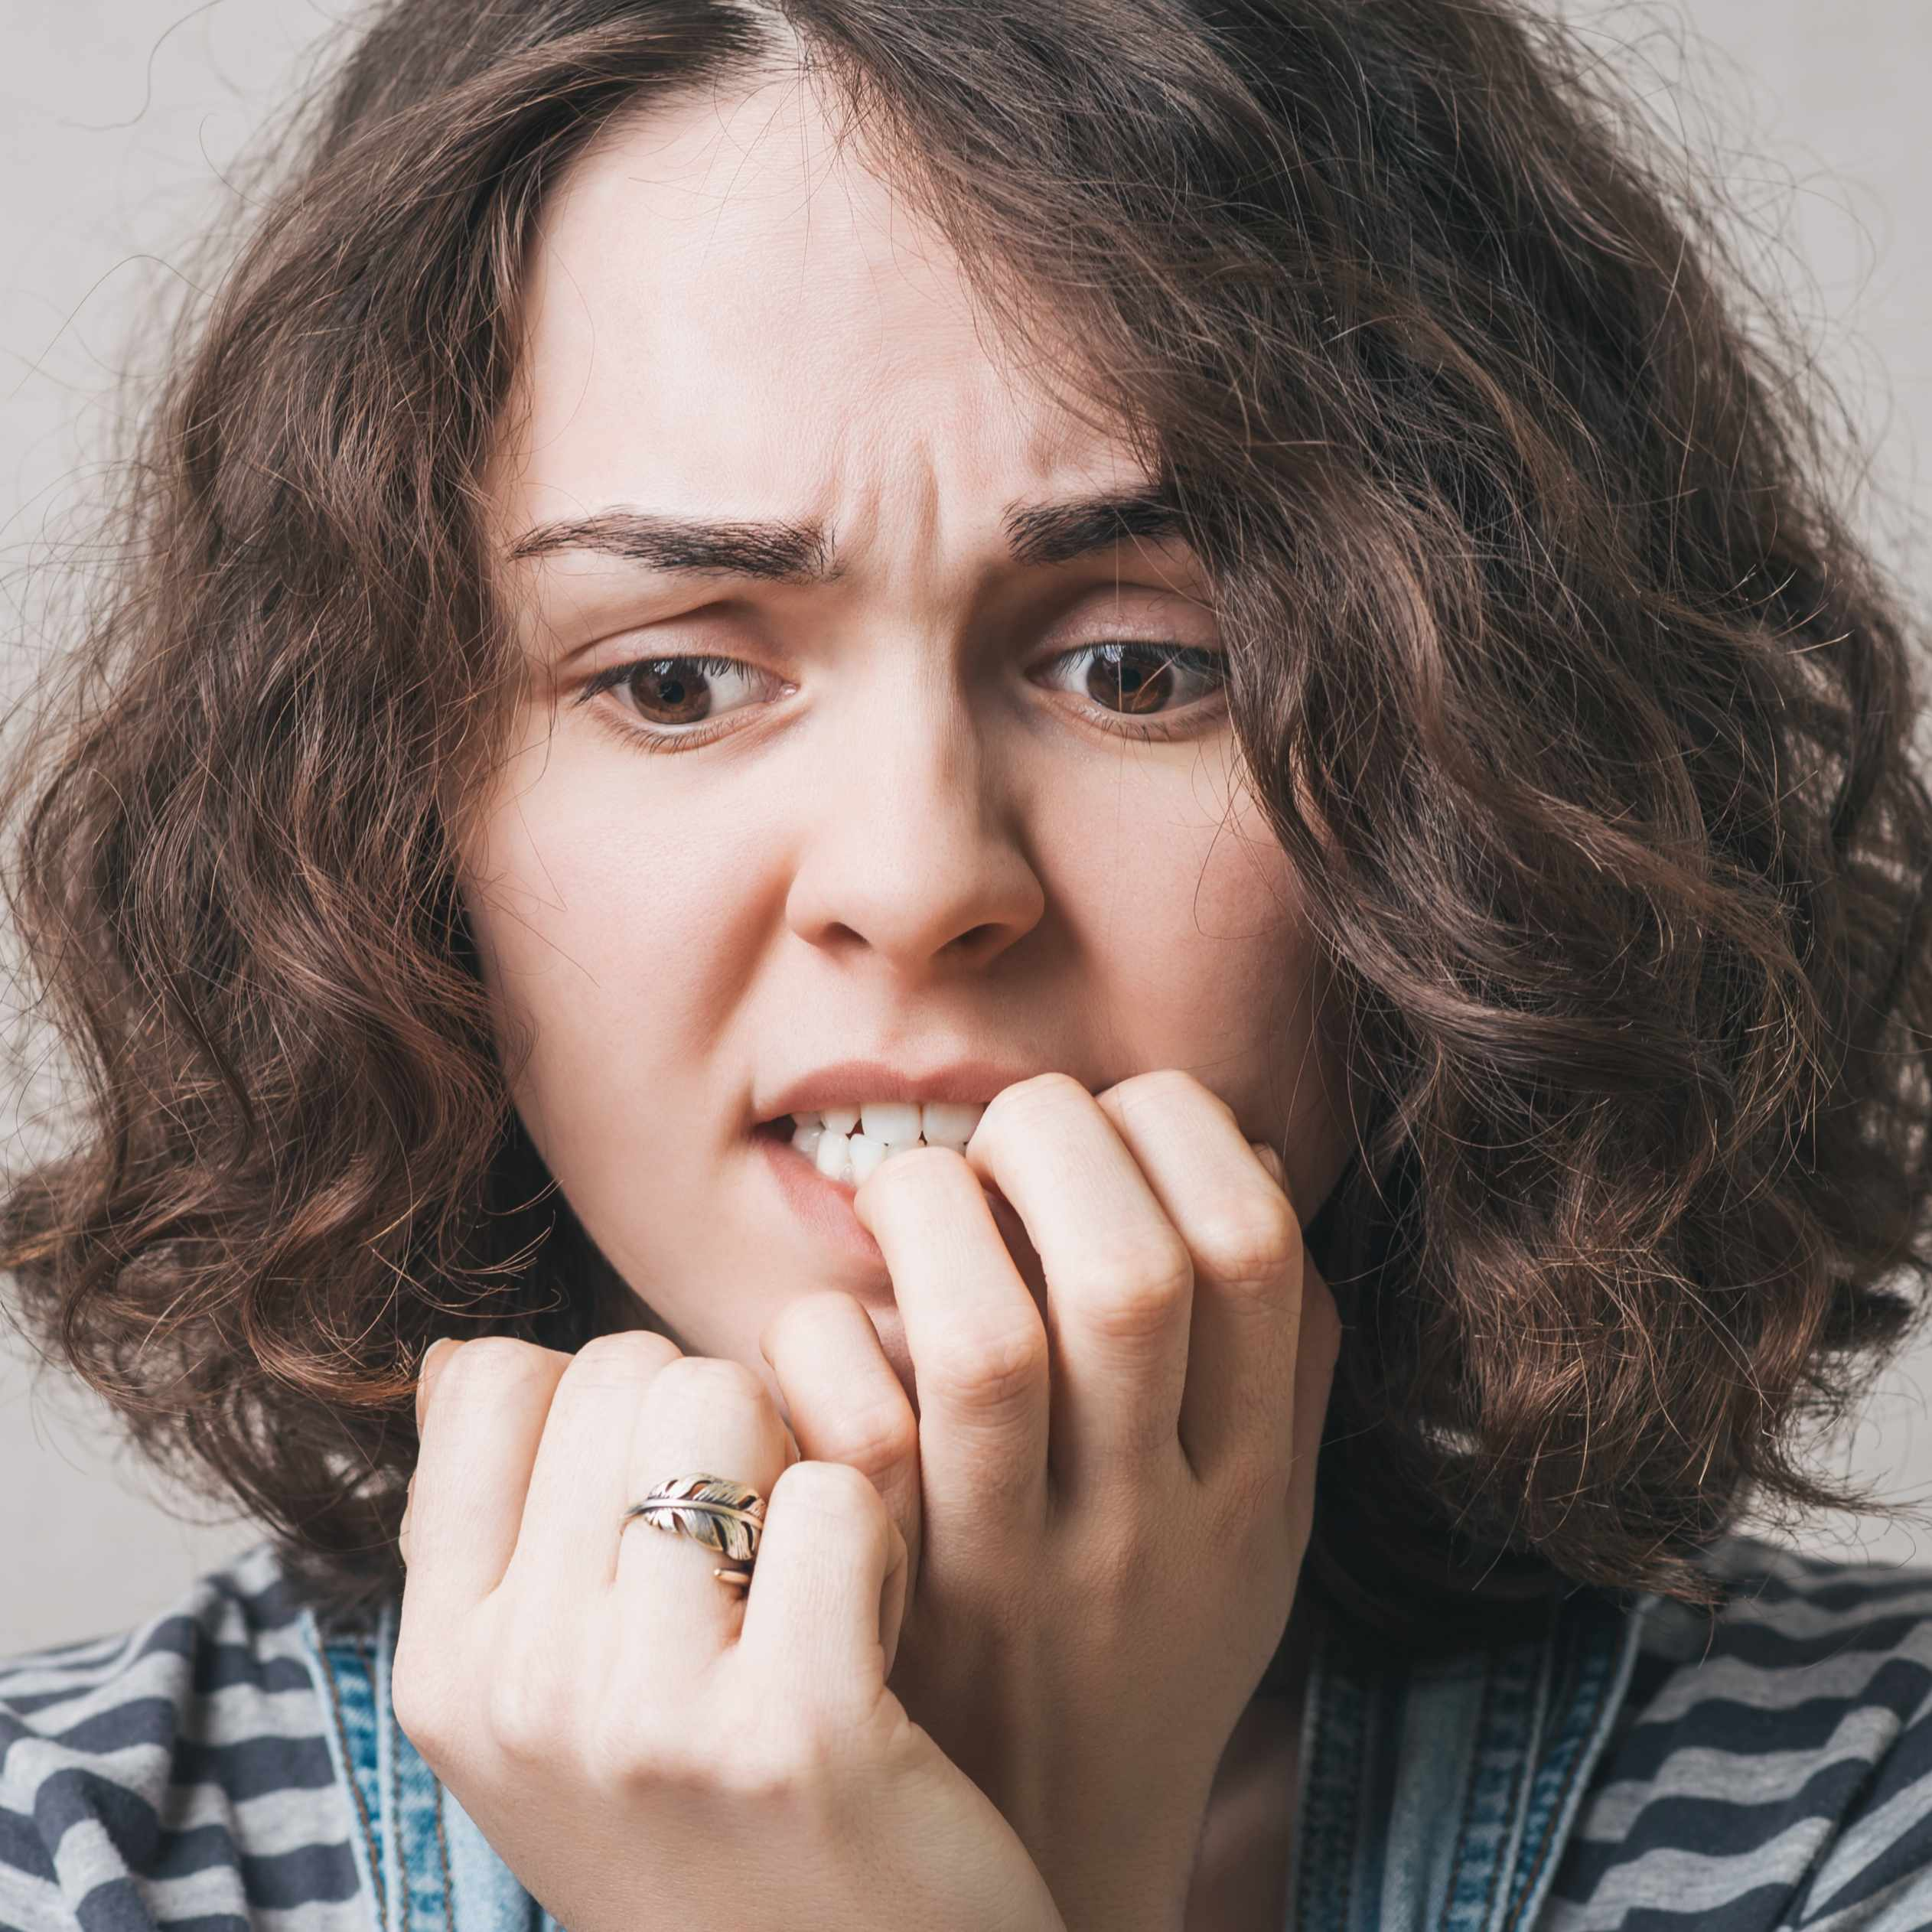 an anxious or nervous woman biting her nails and looking worried